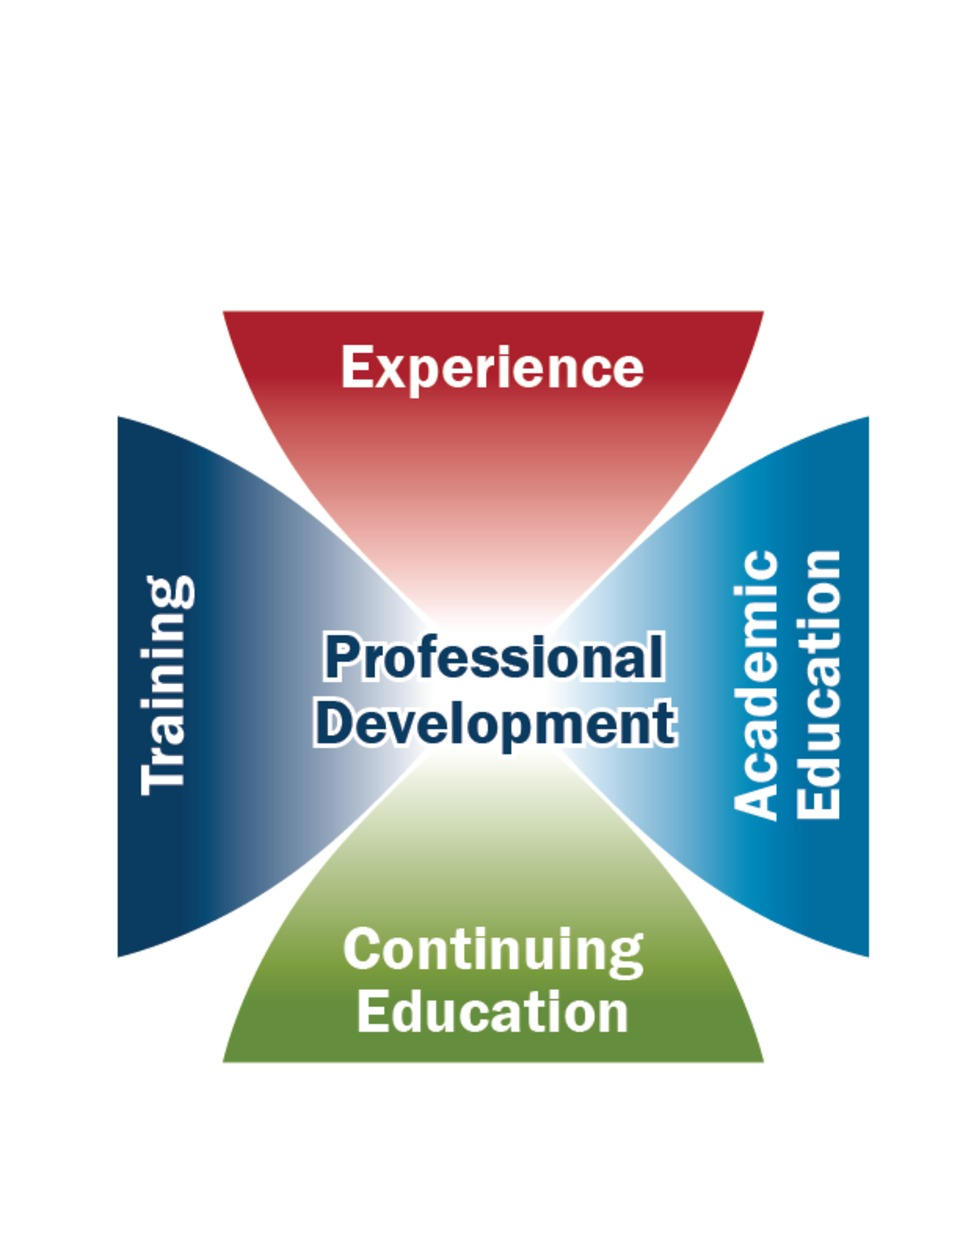 4 Pillars of Professional Development in the Fire Service